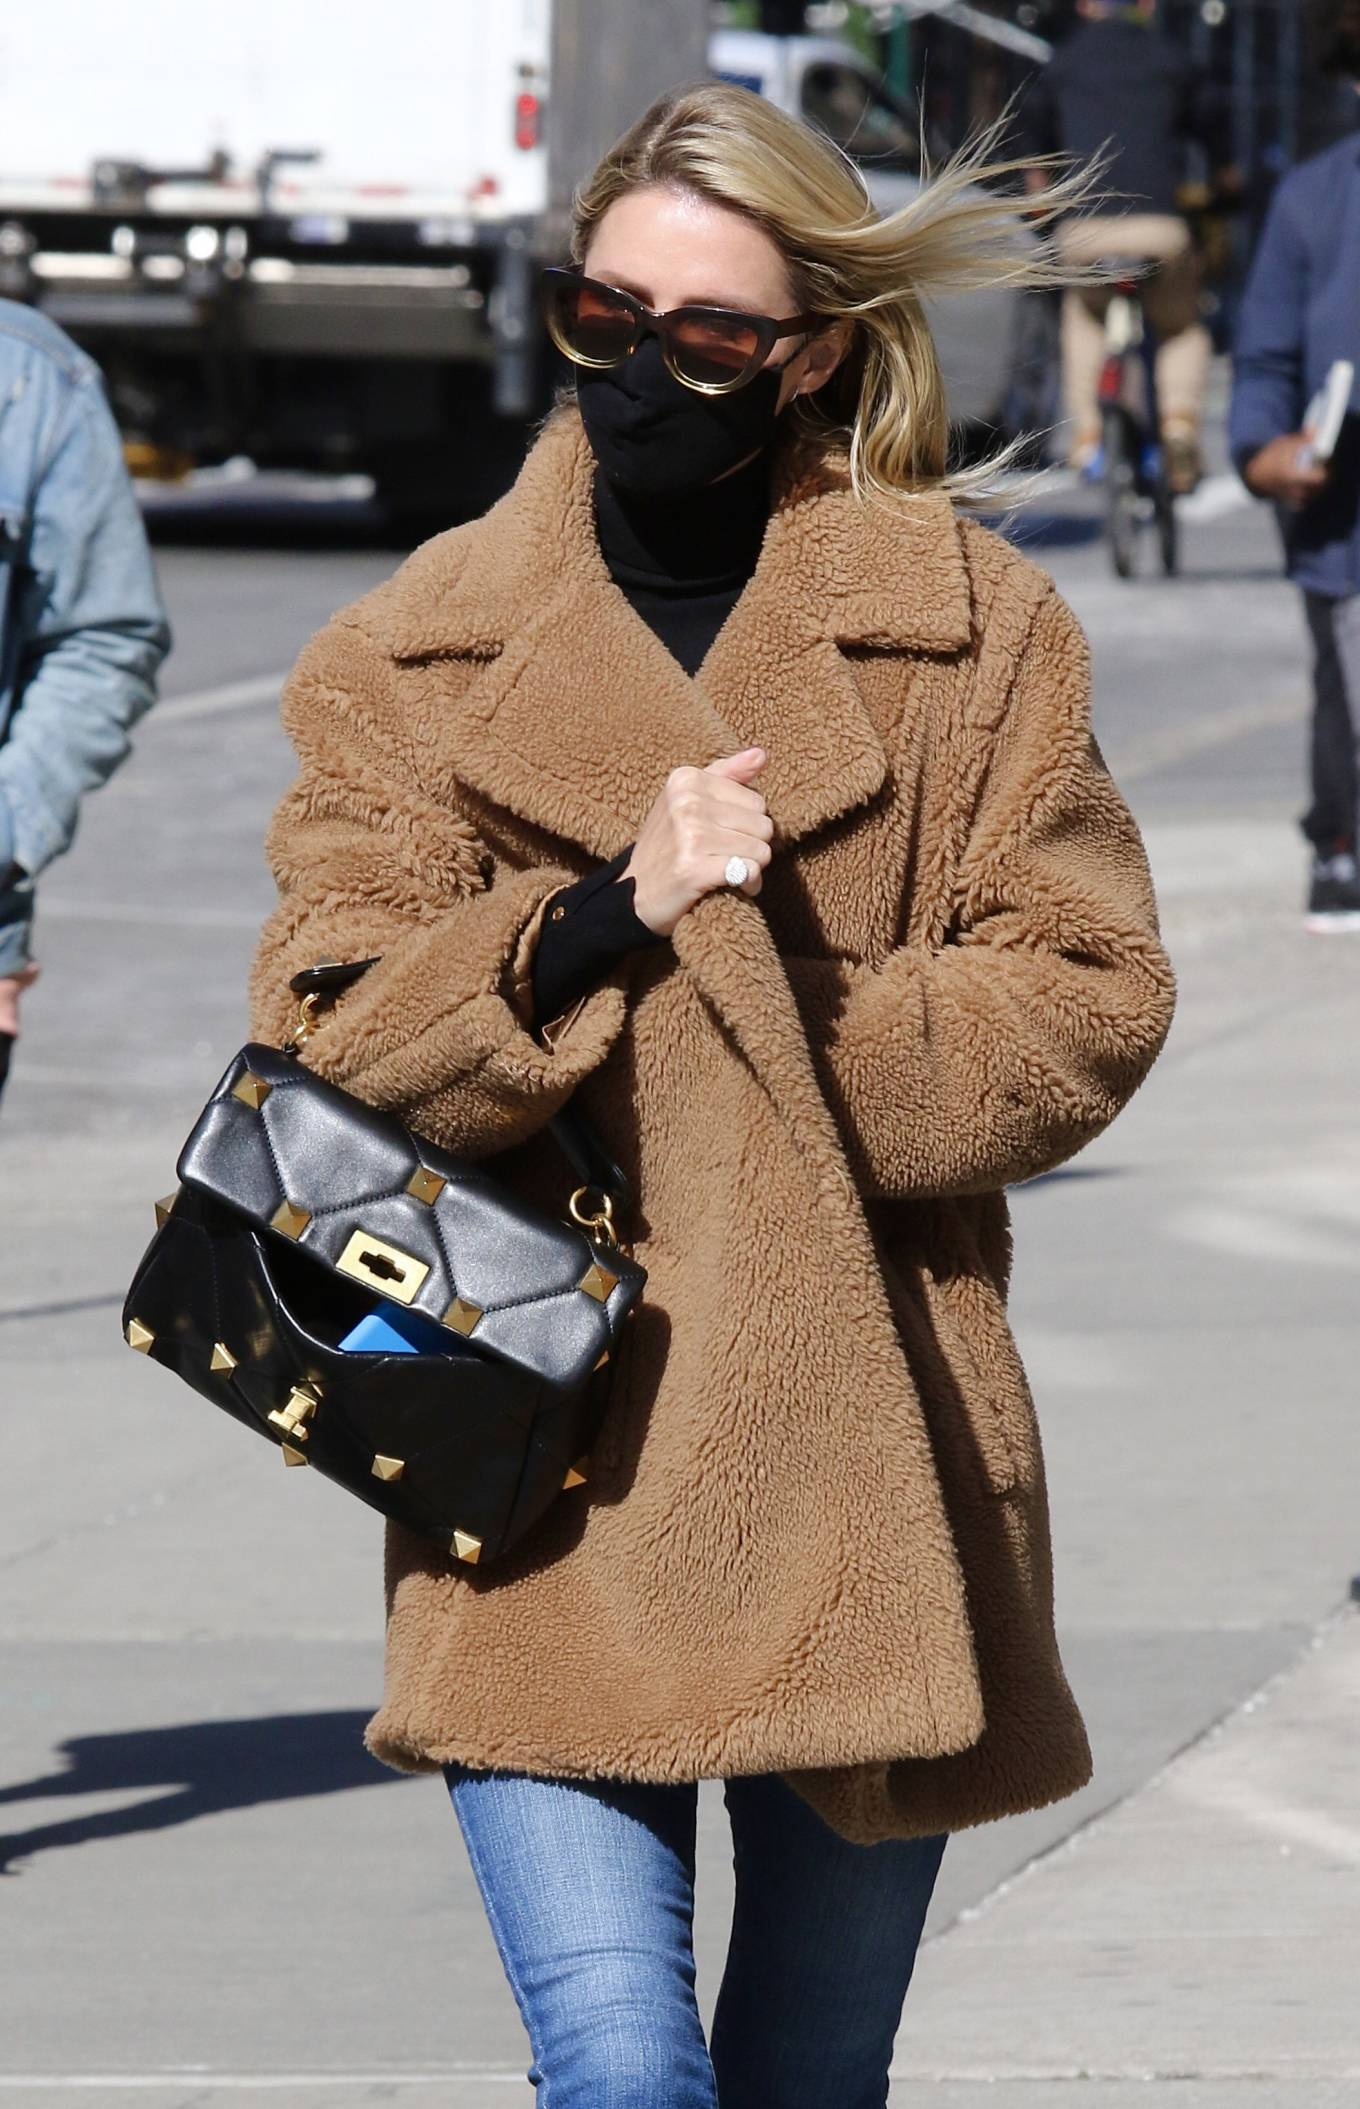 Nicky Hilton - Wearing a brown teddy bear coat while out in Manhattan